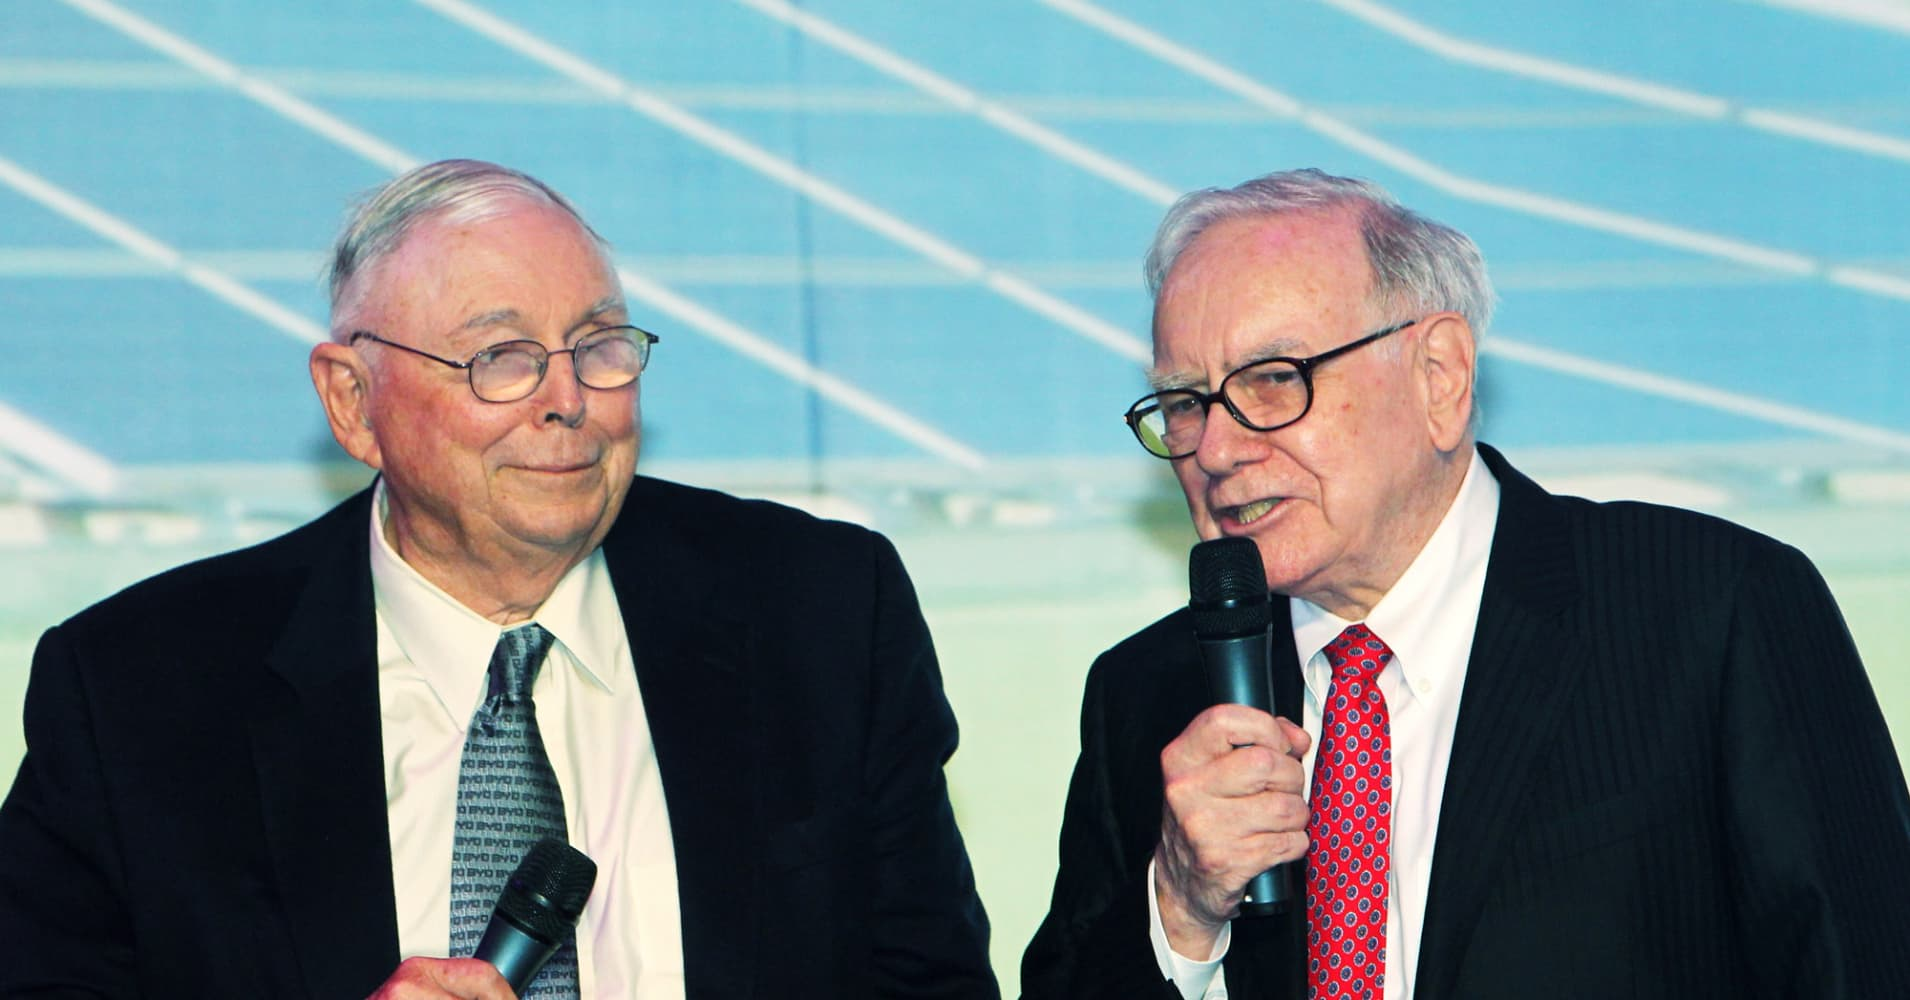 Charlie Munger praises this 1 trait of Warren Buffett's—without it, 'you won't get very far in life'